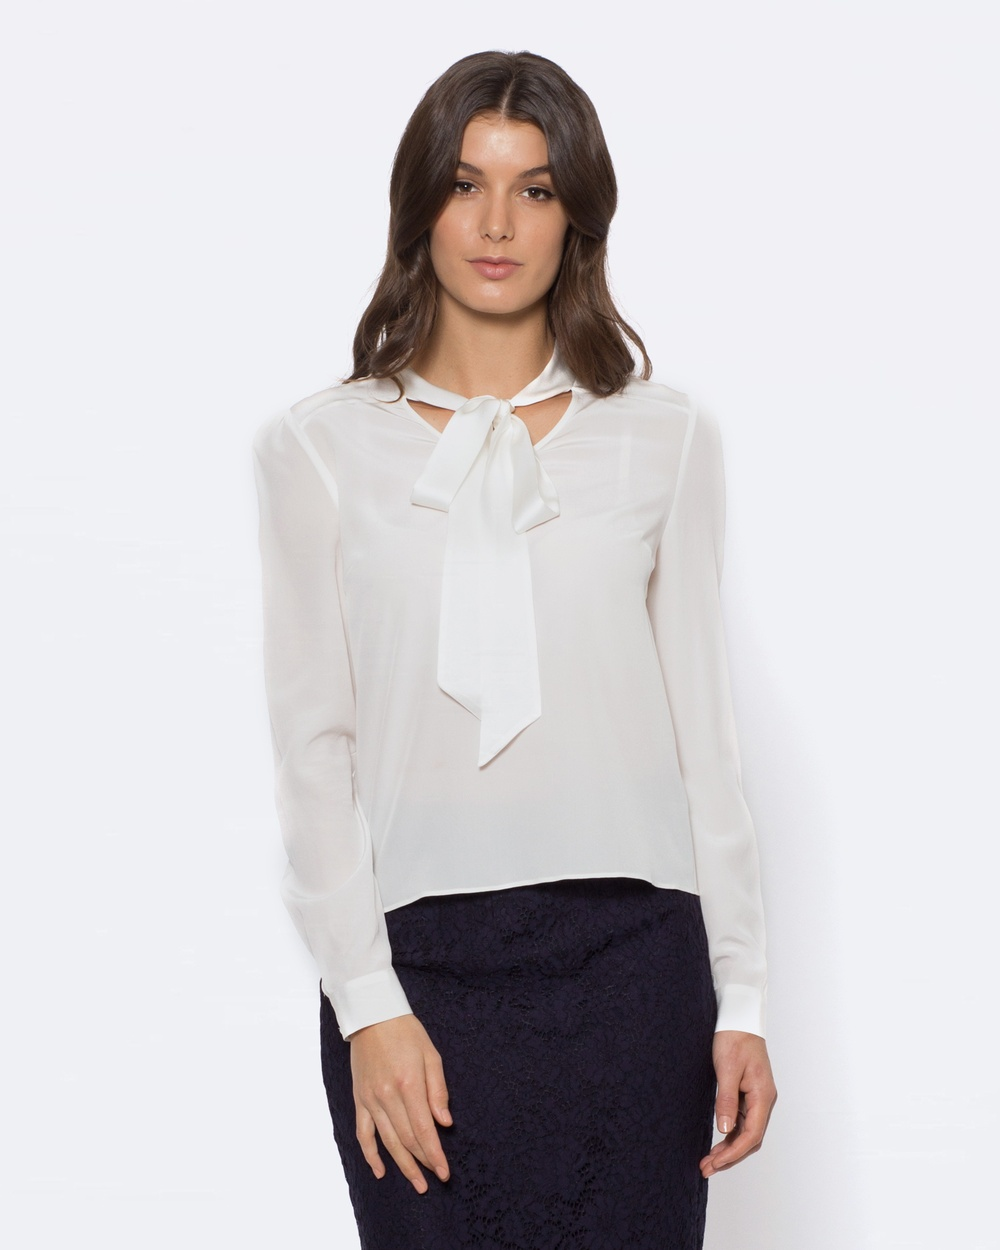 Alannah Hill After Dark Blouse Tops White After Dark Blouse